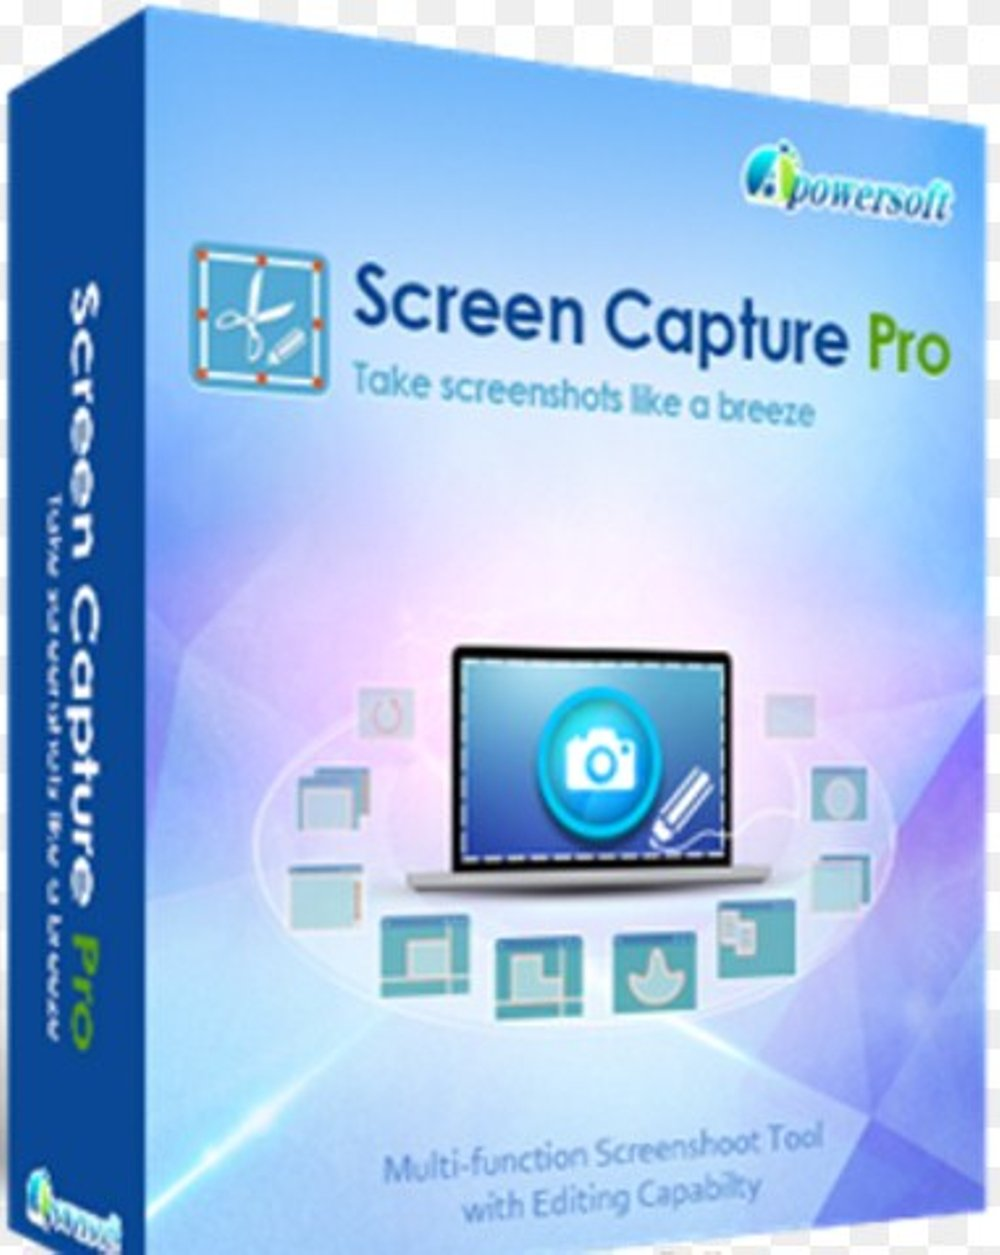 Apowersoft Screen Capture Pro 1.4.7.15 Crack Download HERE !